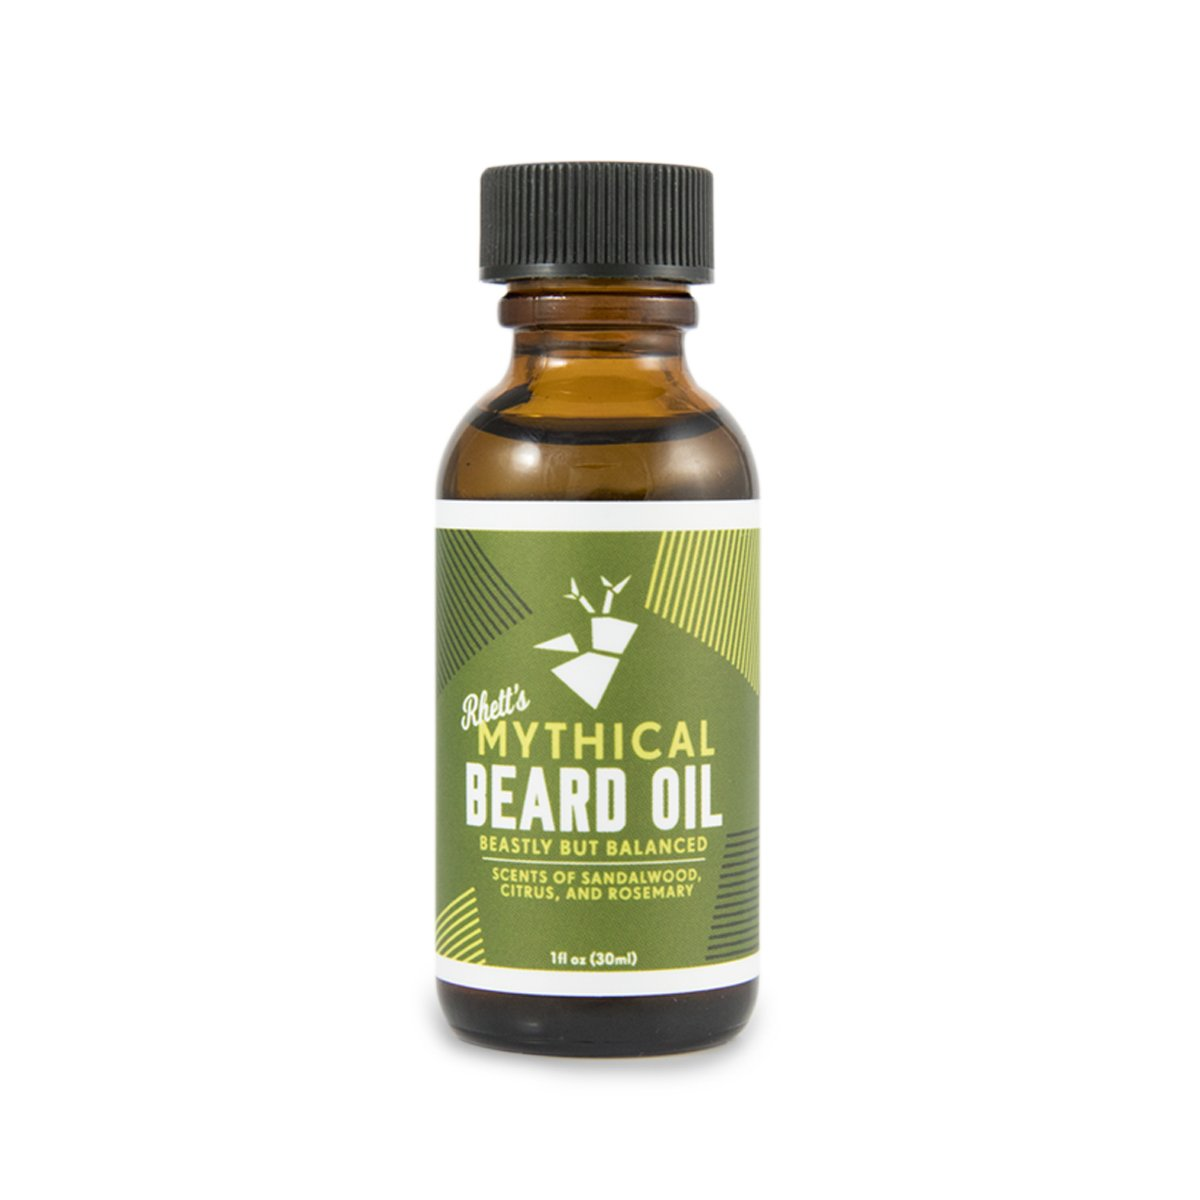 Rhett's Beard Oil - All natural - Scent of sandalwood, citrus, and rosemary - 1 fl oz bottle - Created by YouTube celebrities Rhett and Link from Good Mythical Morning by Beard and Lady